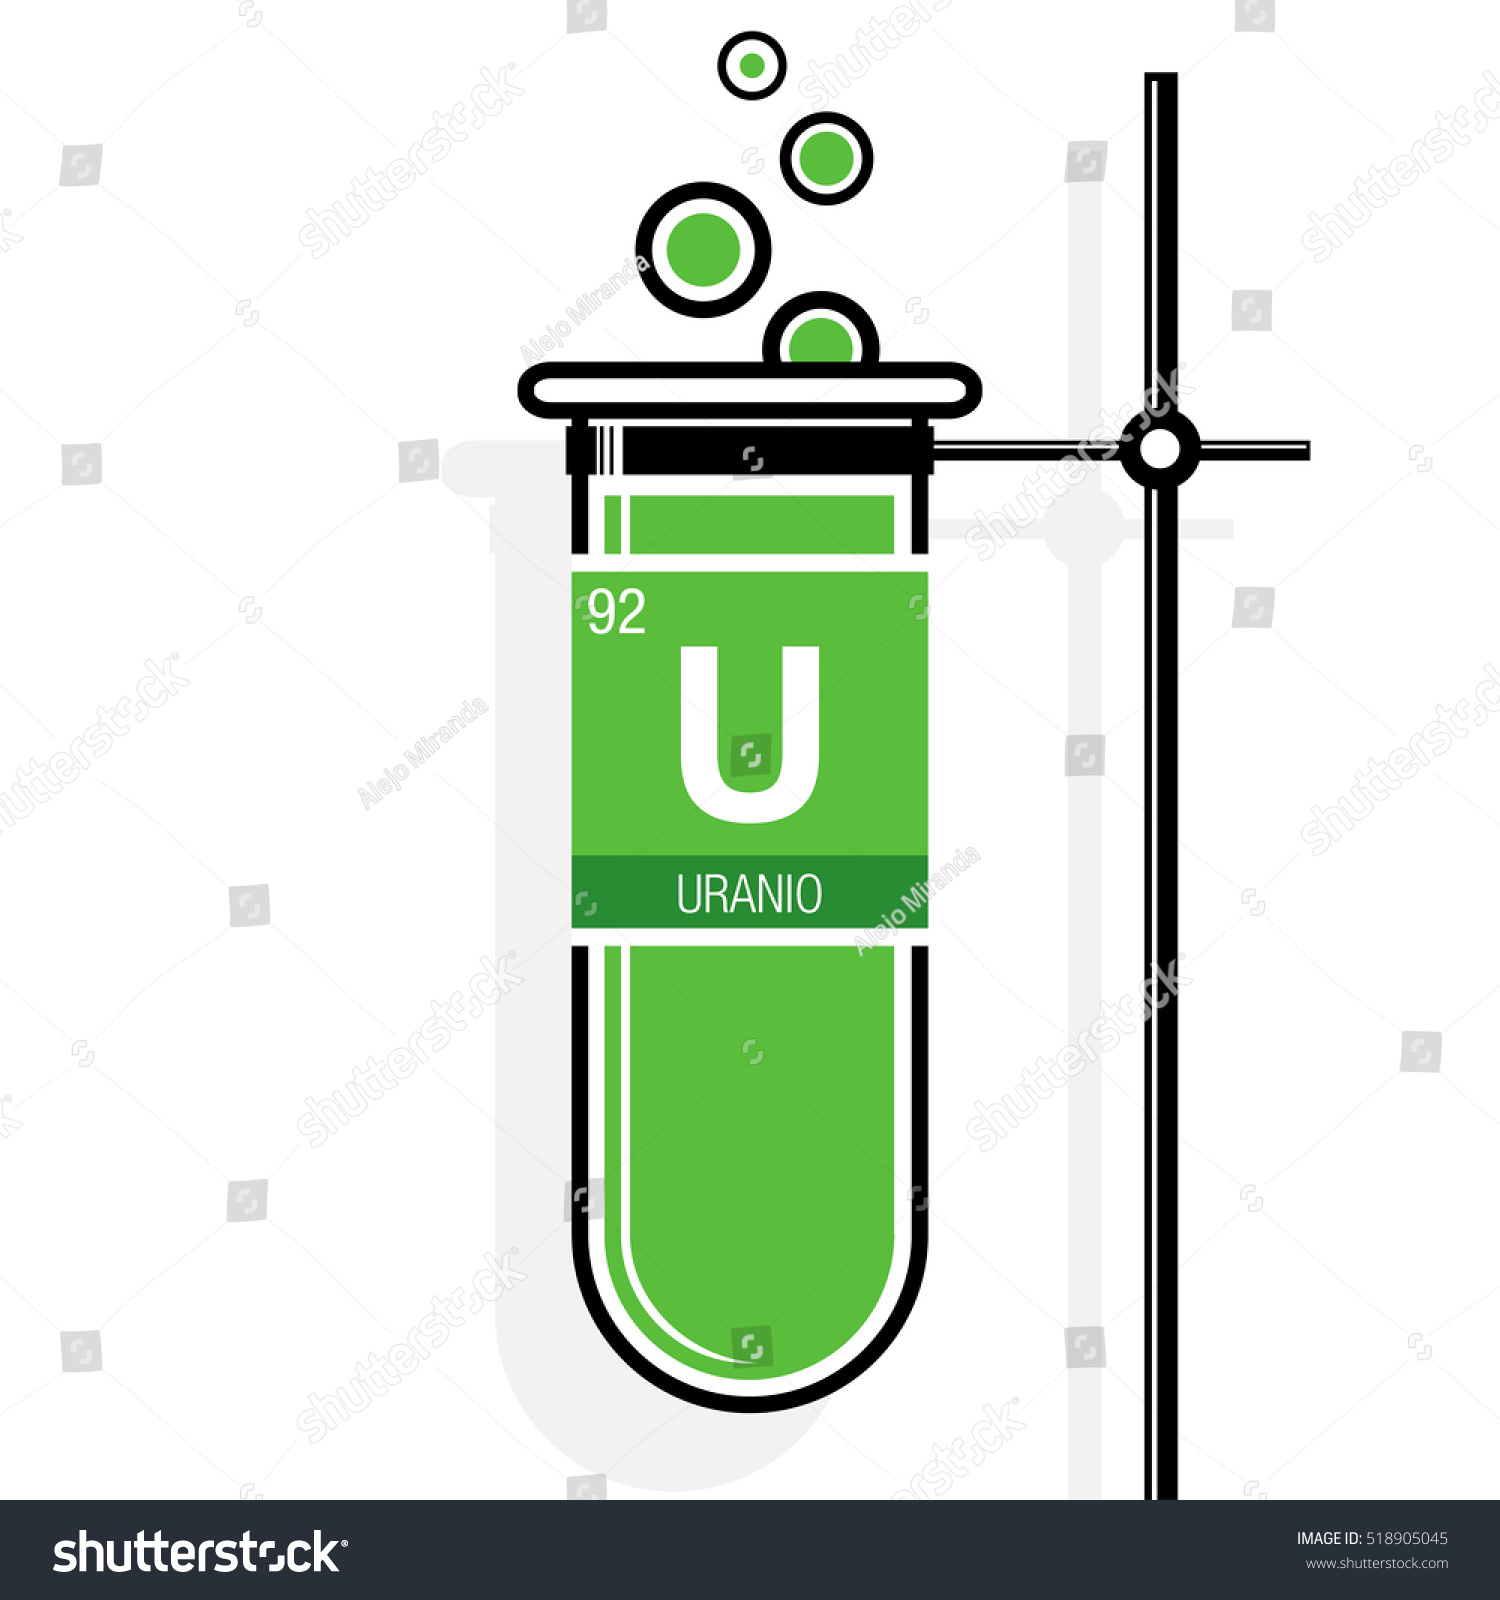 Uranio Symbol Uranium Spanish Language On Stock Photo (Photo, Vector ...